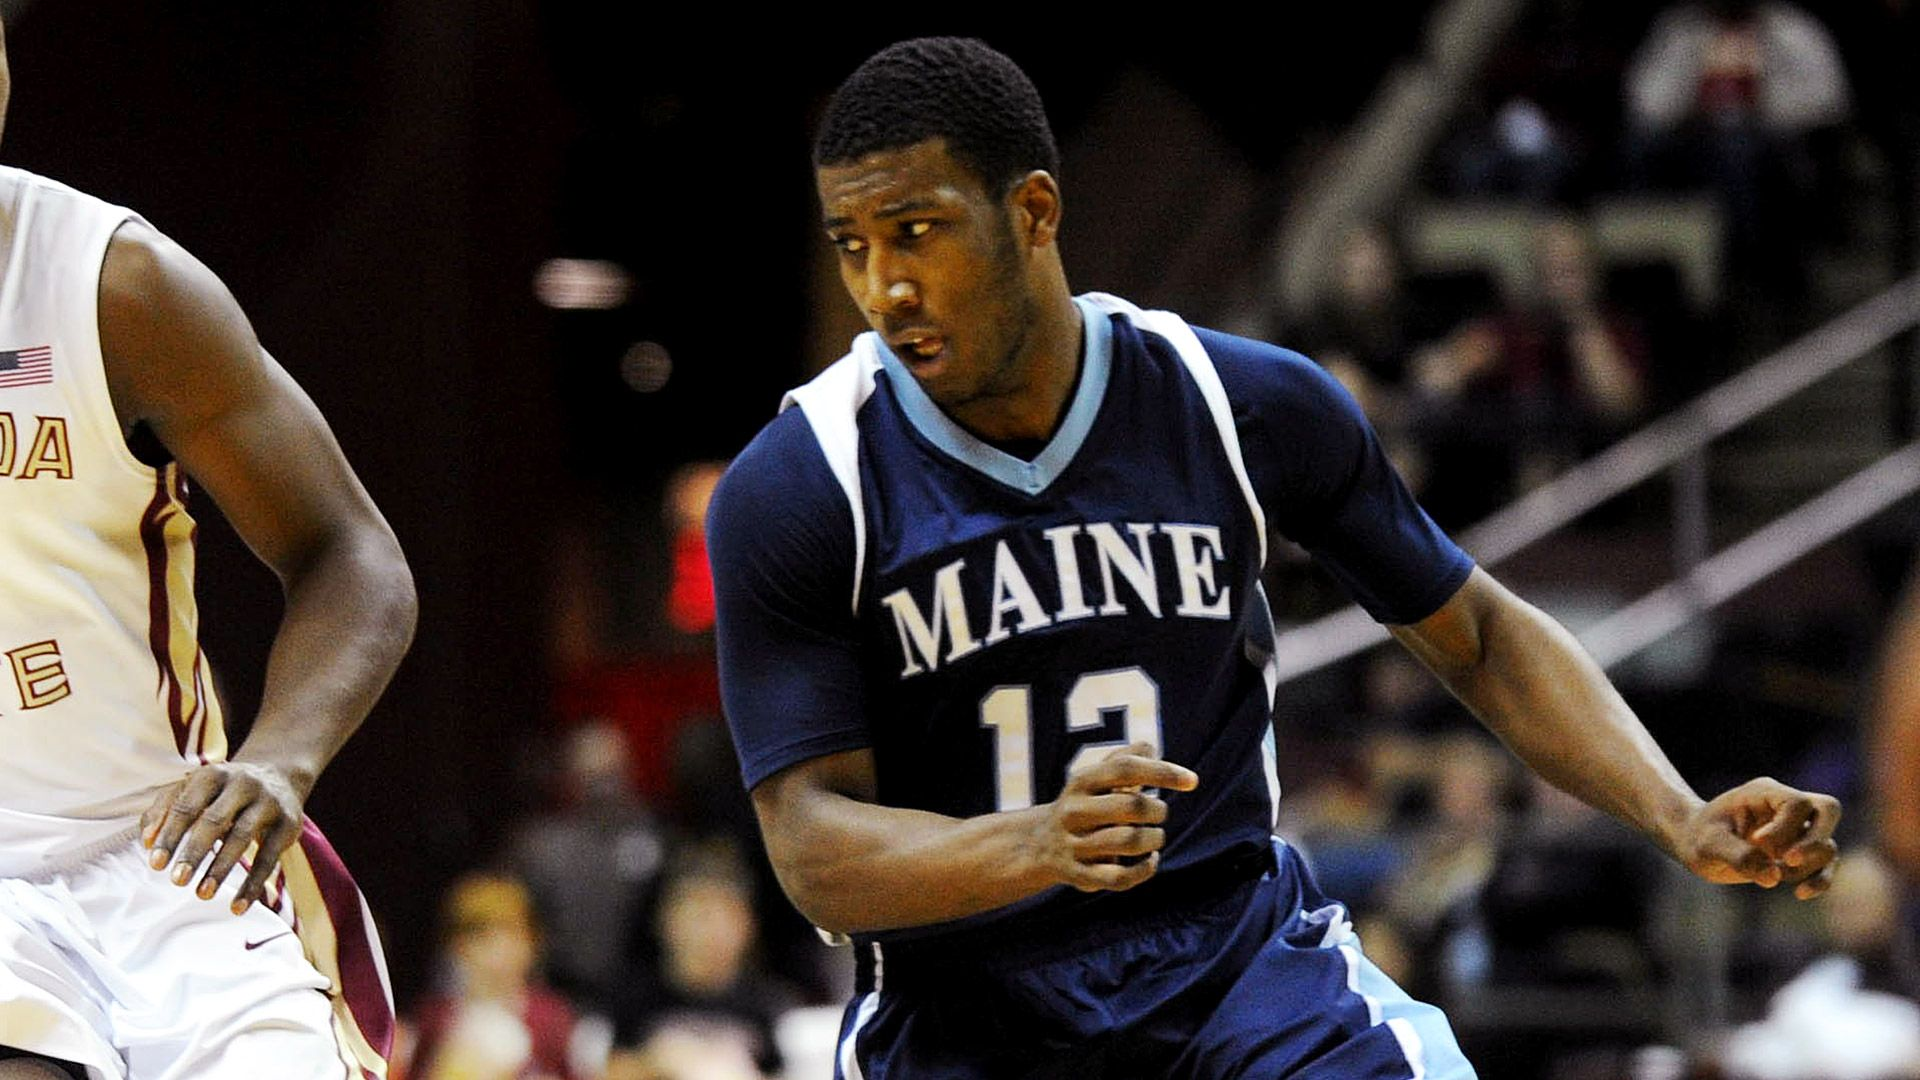 2013-14 College Basketball Preview - Maine Black Bears